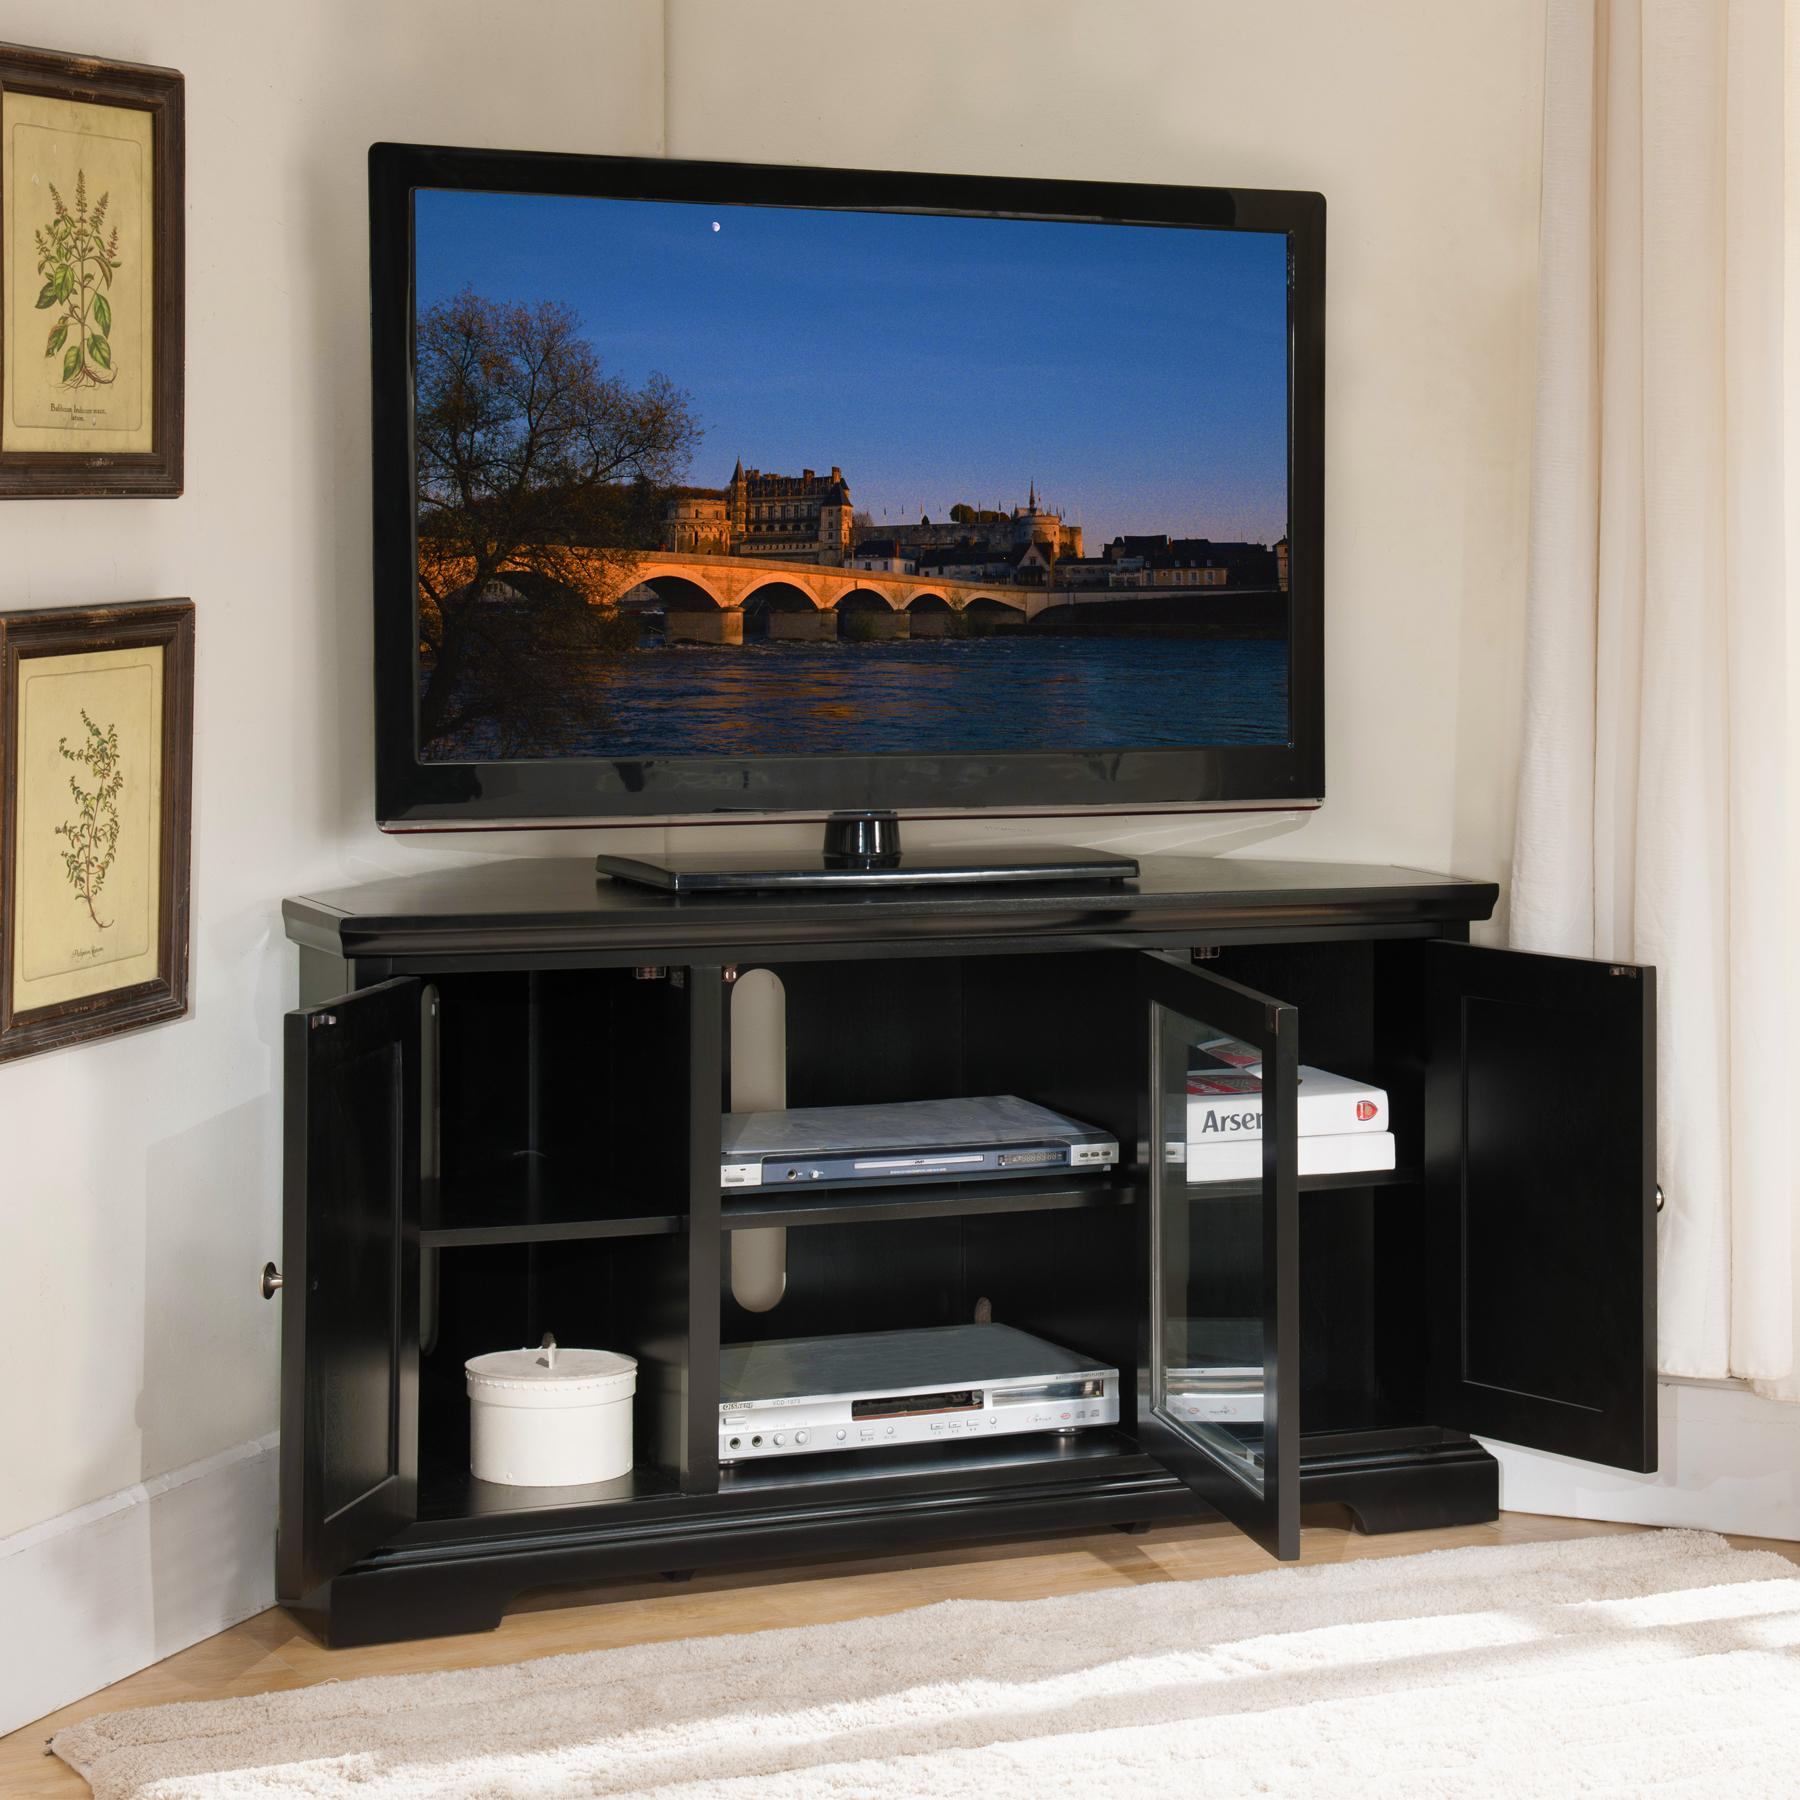 Amazon Com Leick Black Hardwood Corner Tv Stand 56 Inch